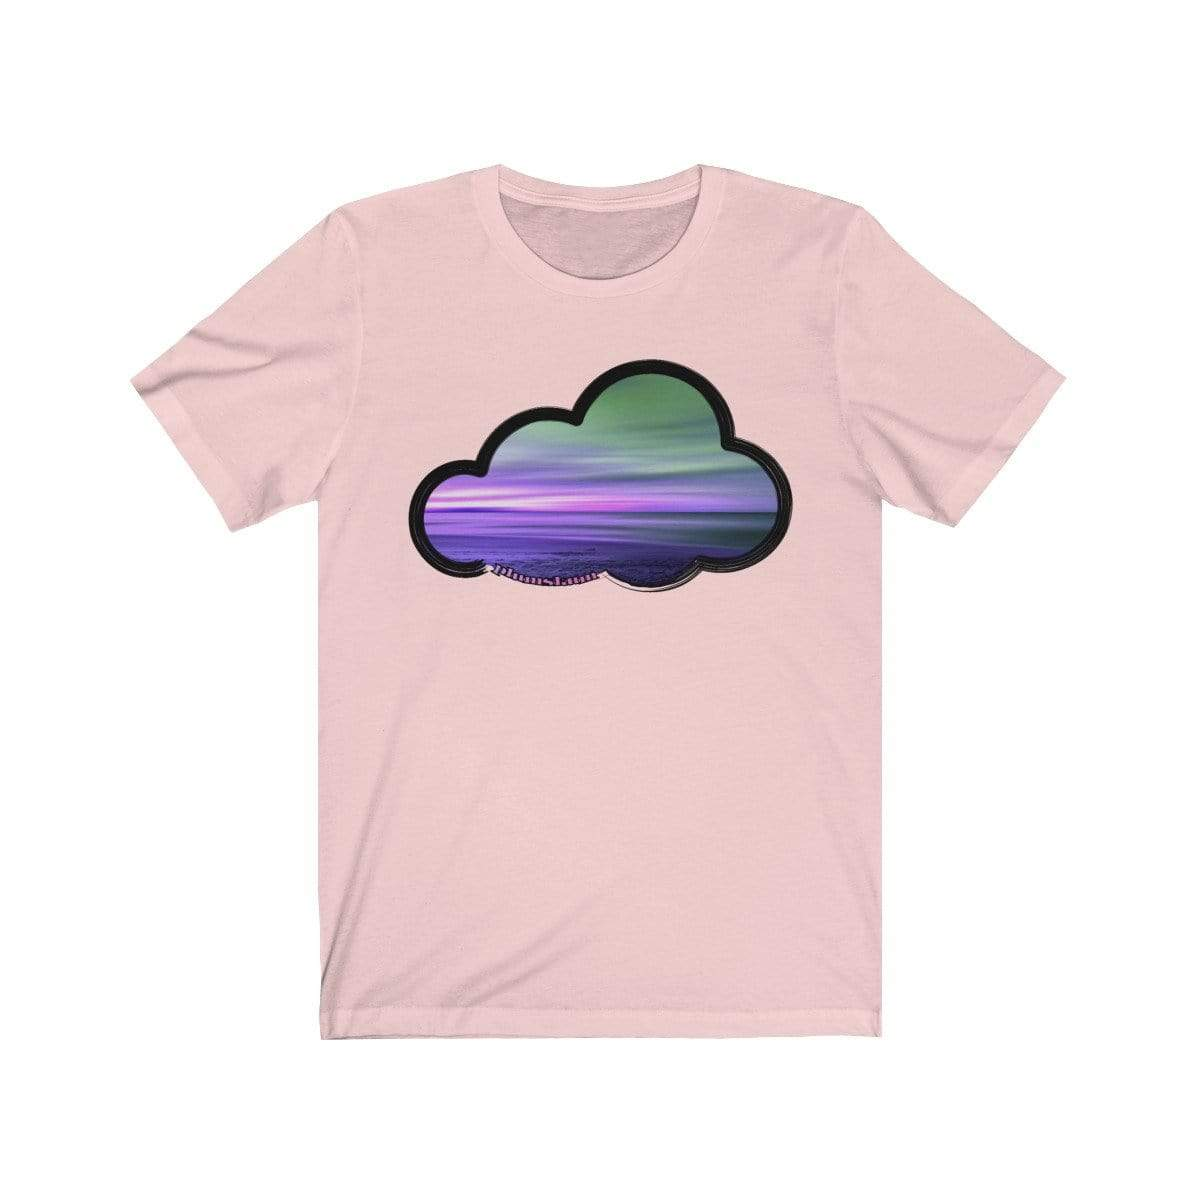 Printify T-Shirt Soft Pink / M Beaches Art Clouds Tee